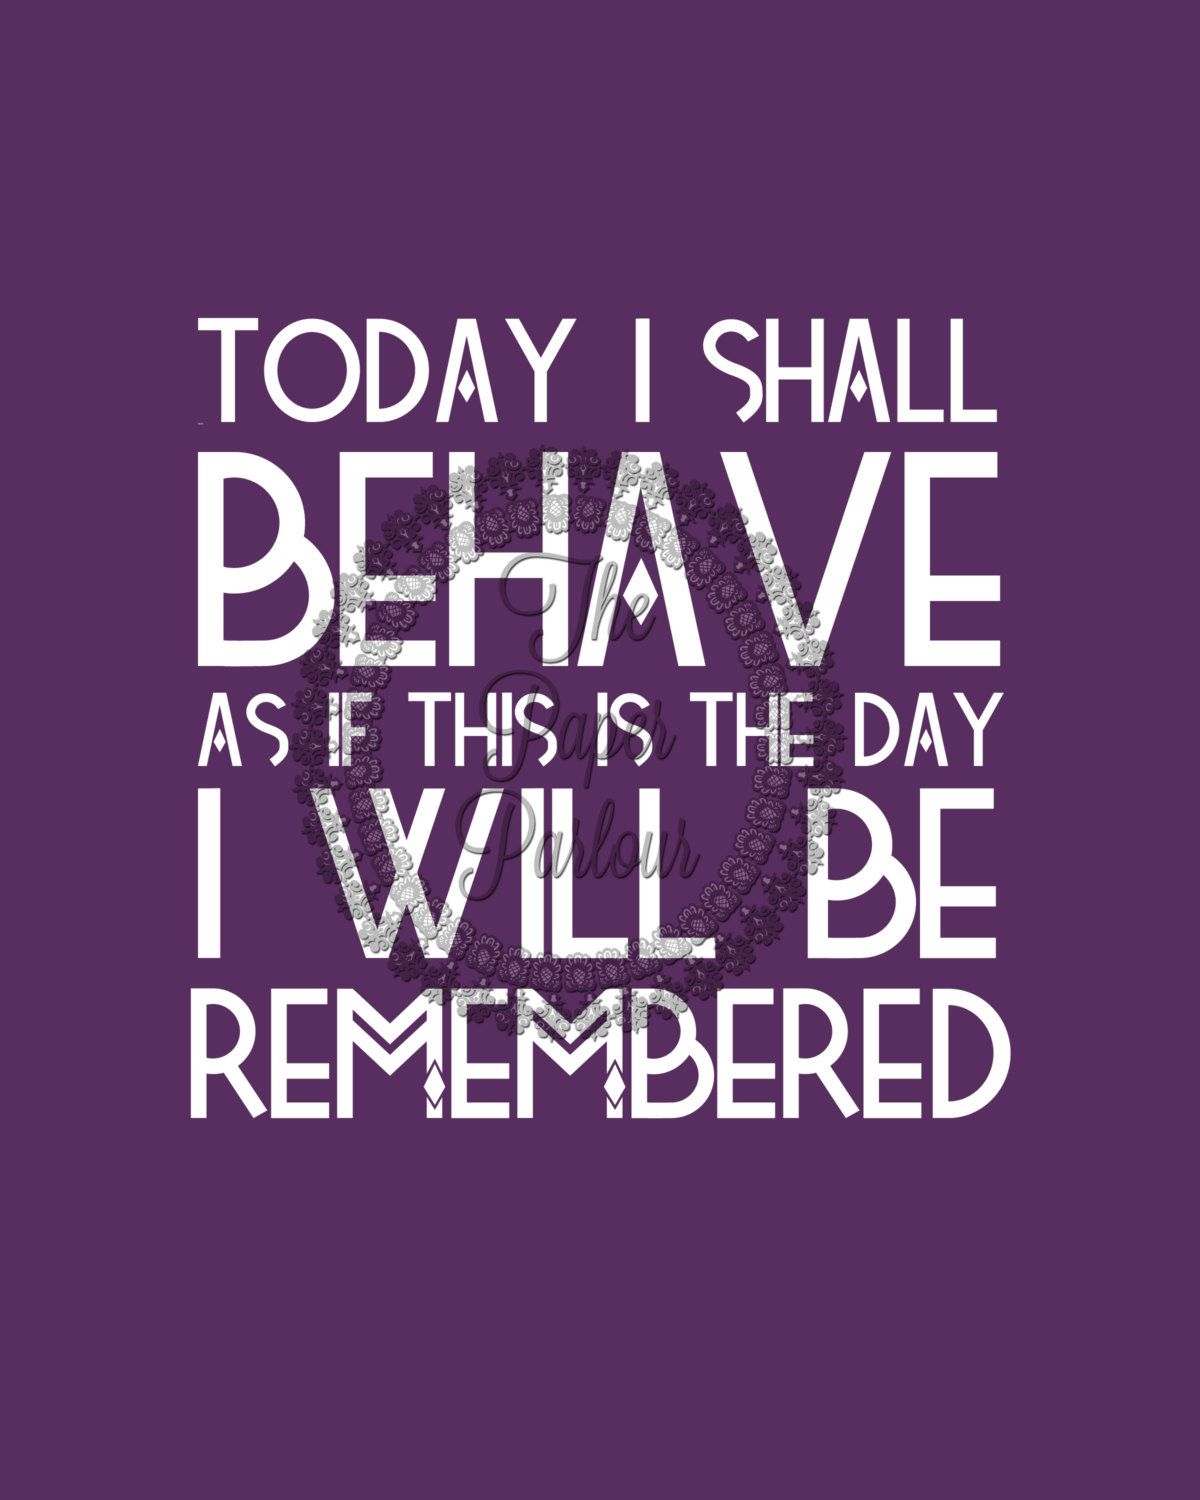 Dr Suess She Behaves As If Everyday Is The Day She Will Be Remebered Always Kind Keep Her Safe Behave Quotes Dr Suess Quotes Quotes